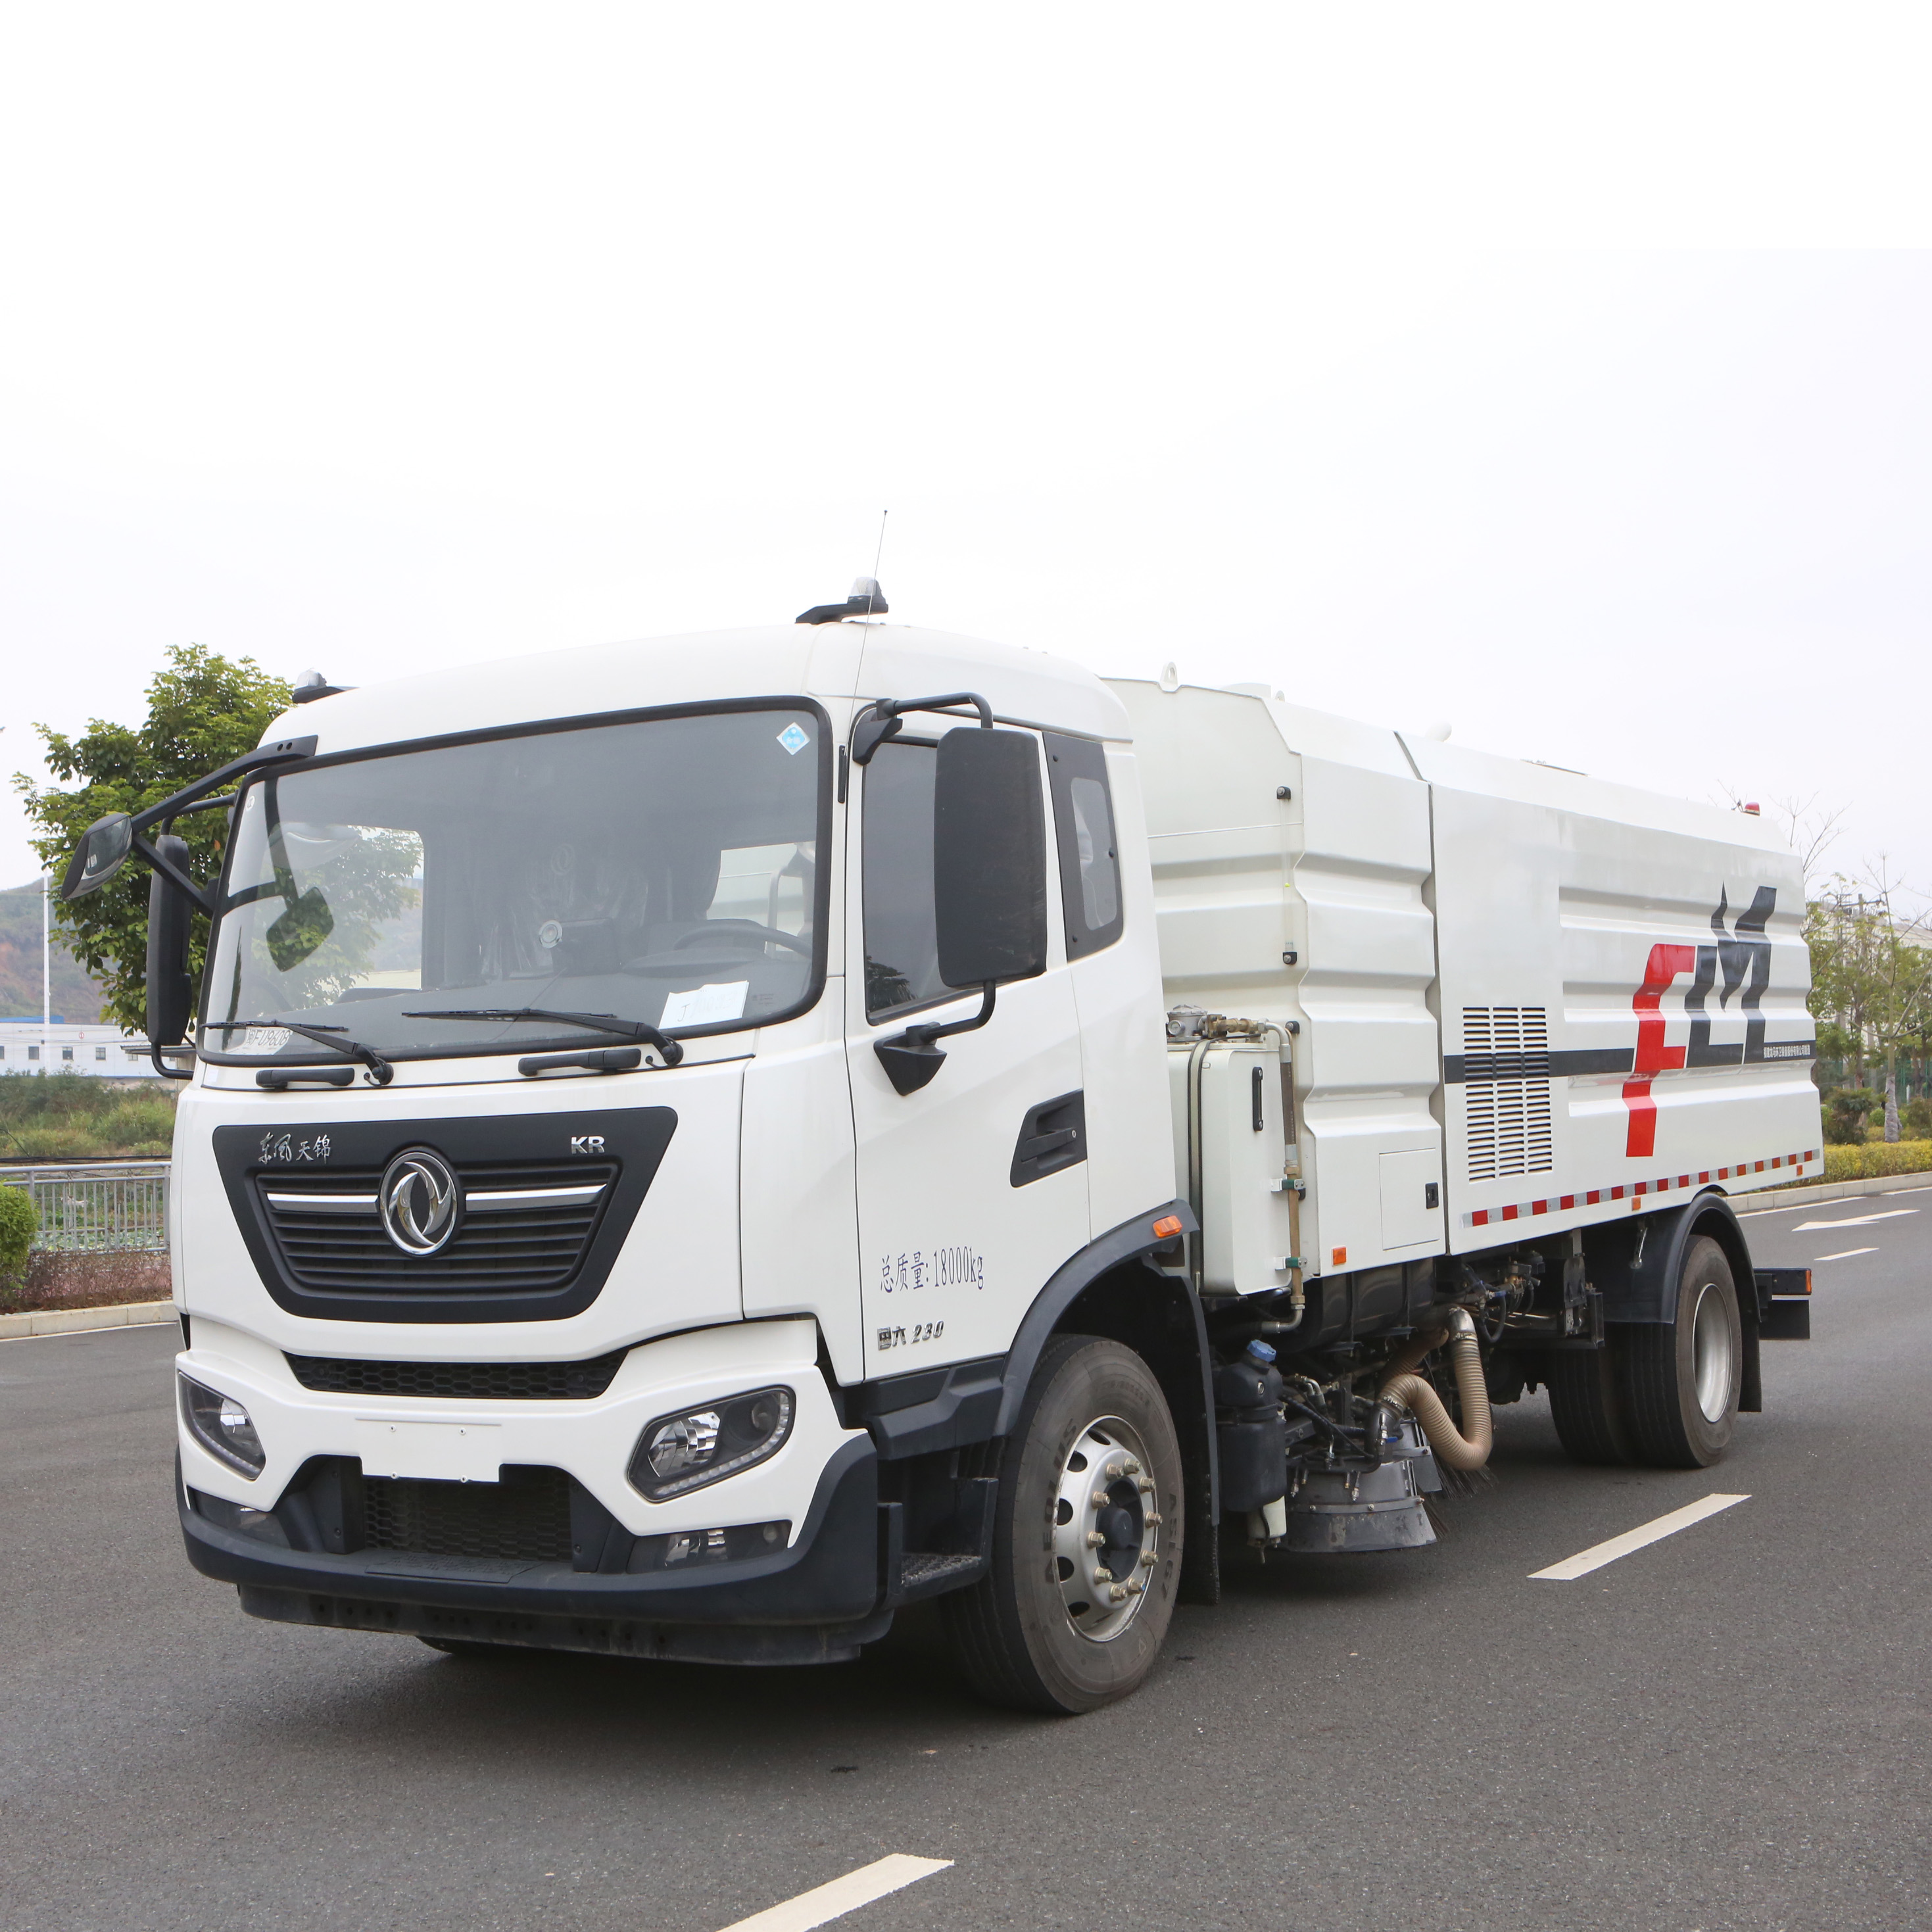 FULONGMA 18-ton latest street sweeper truck function details and features